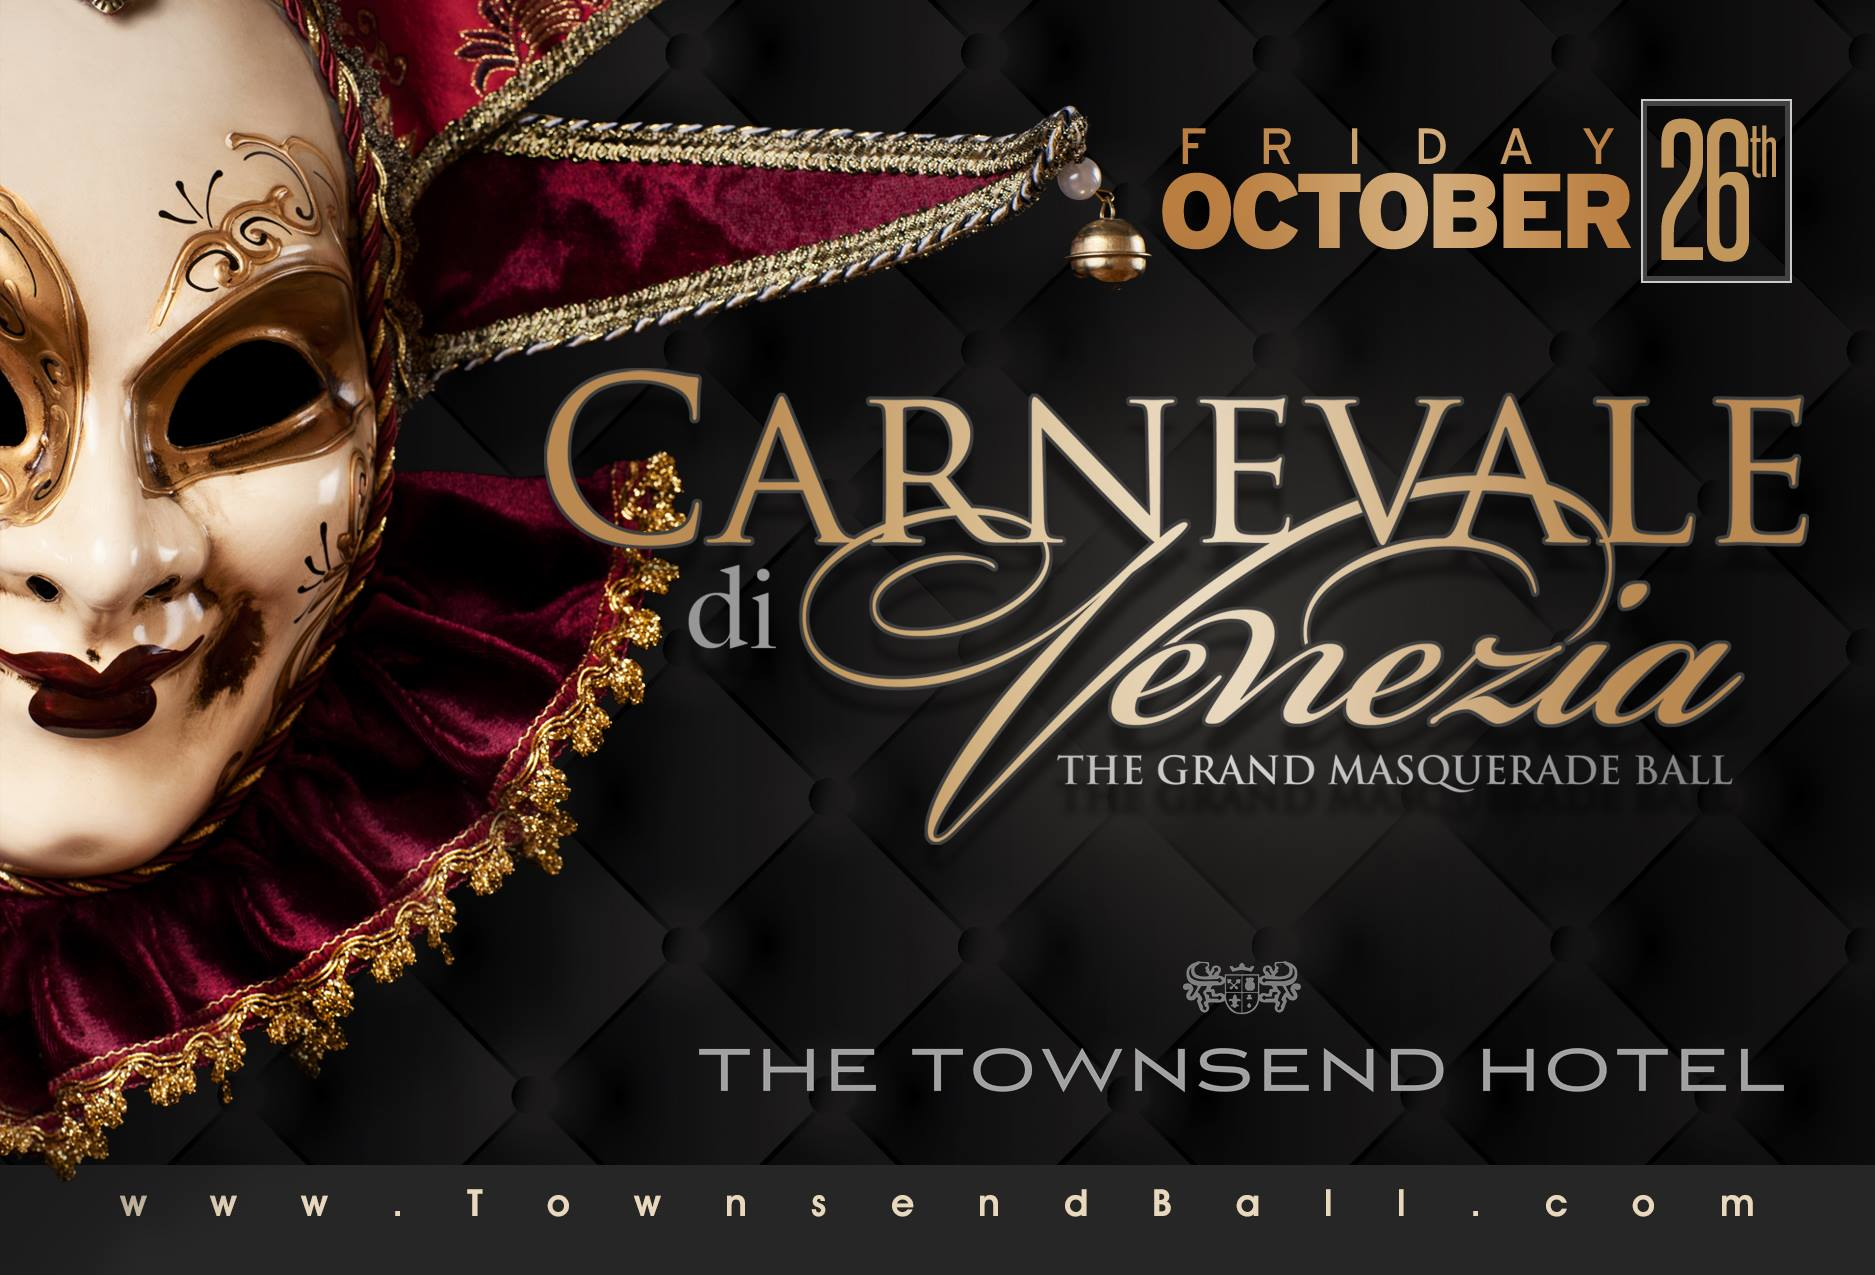 Carnevale di Venezia | The Grand Masquerade Ball 2018